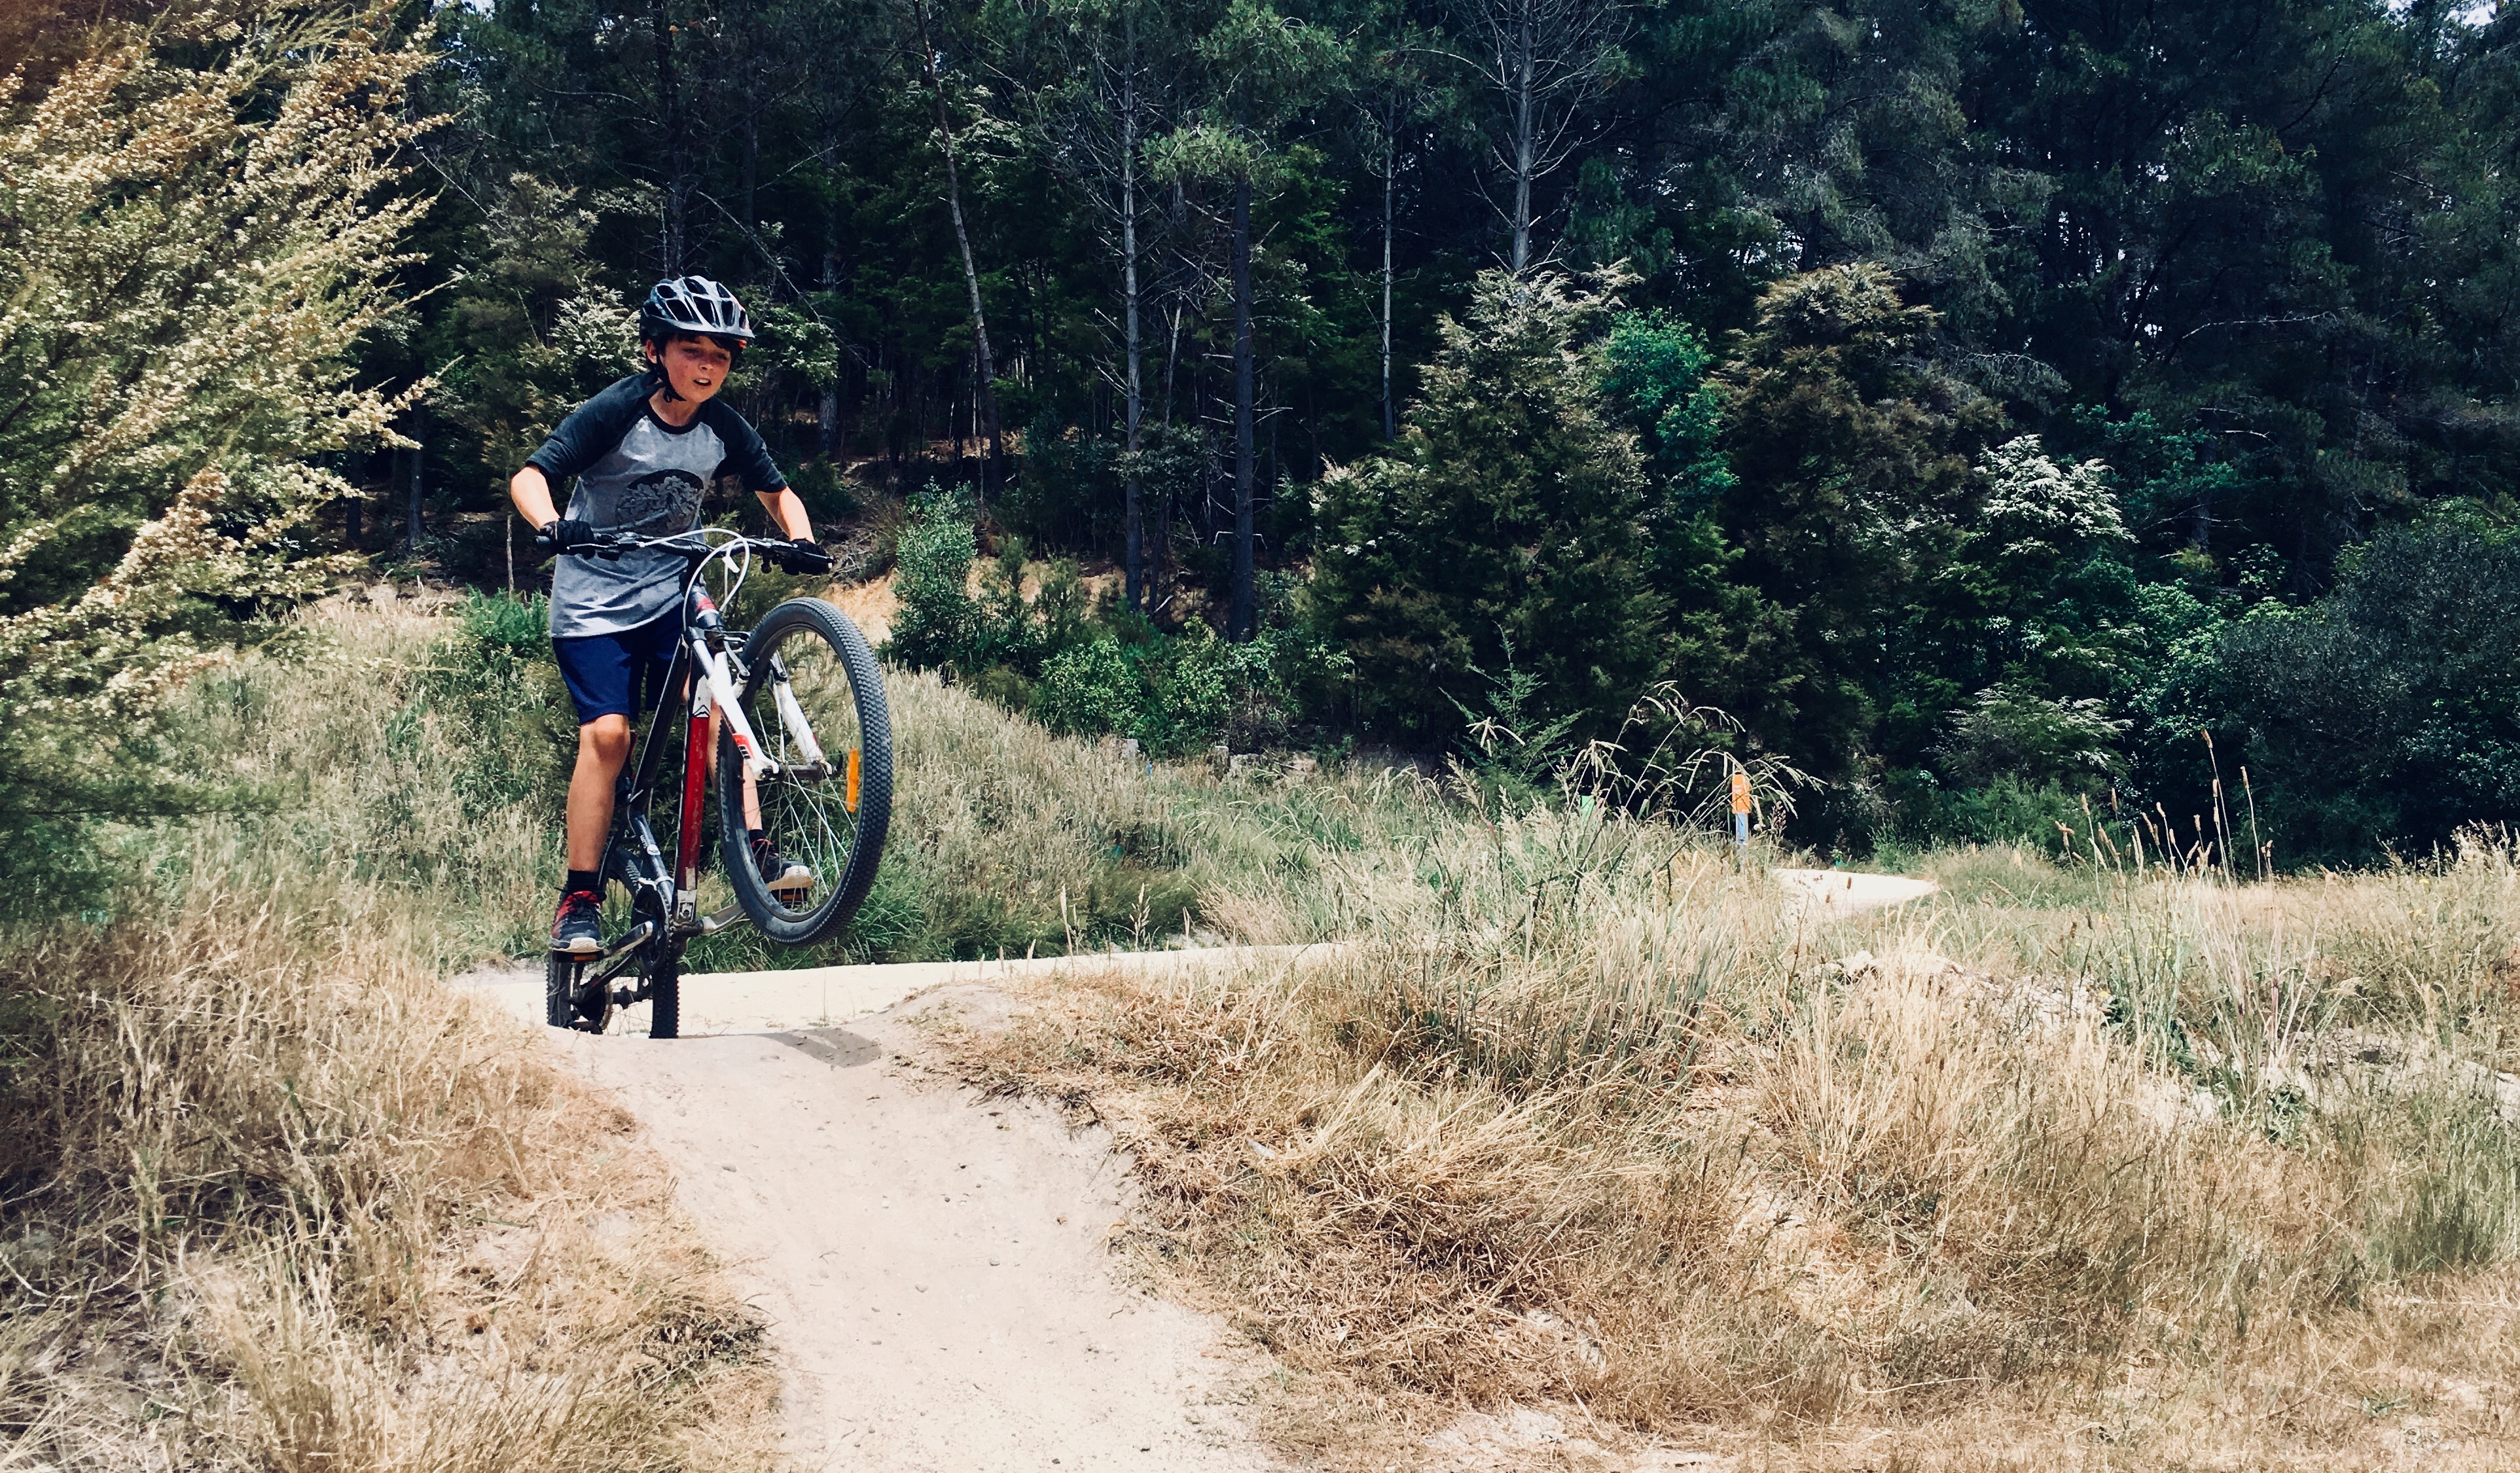 Photo of Boy Riding a Bike, Action, Grass, Wear, Trees, HQ Photo